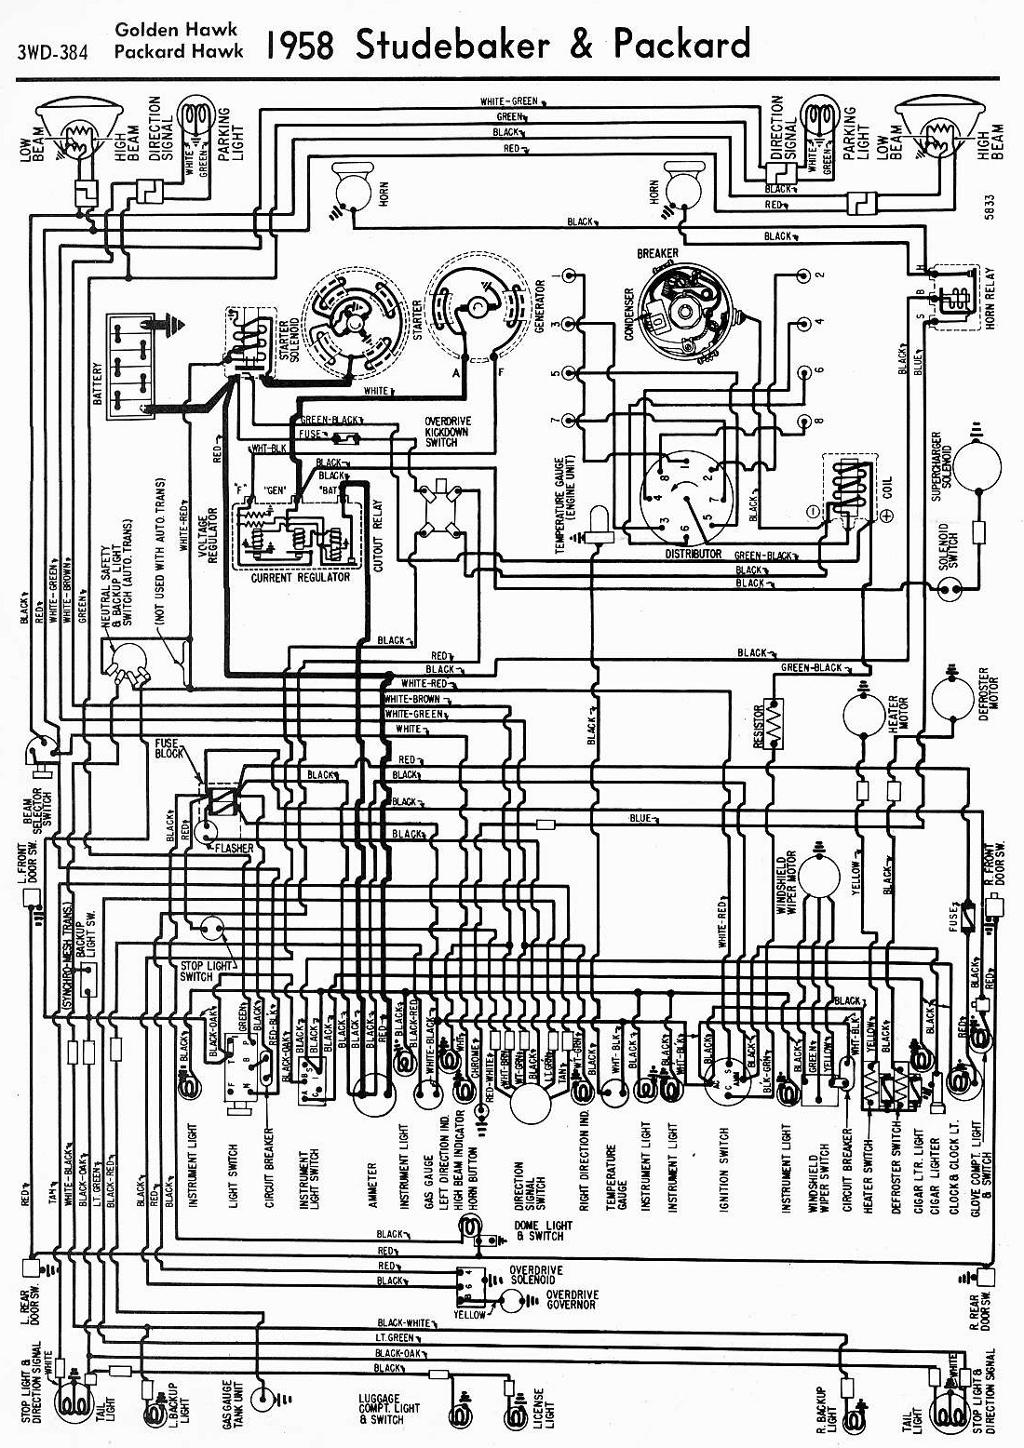 1958 Opel Wiring Diagram Electrical Tis Diagrams 2011 Fuse Box Packard Car Manuals Pdf Fault Codes Rh Automotive Net 1962 1961